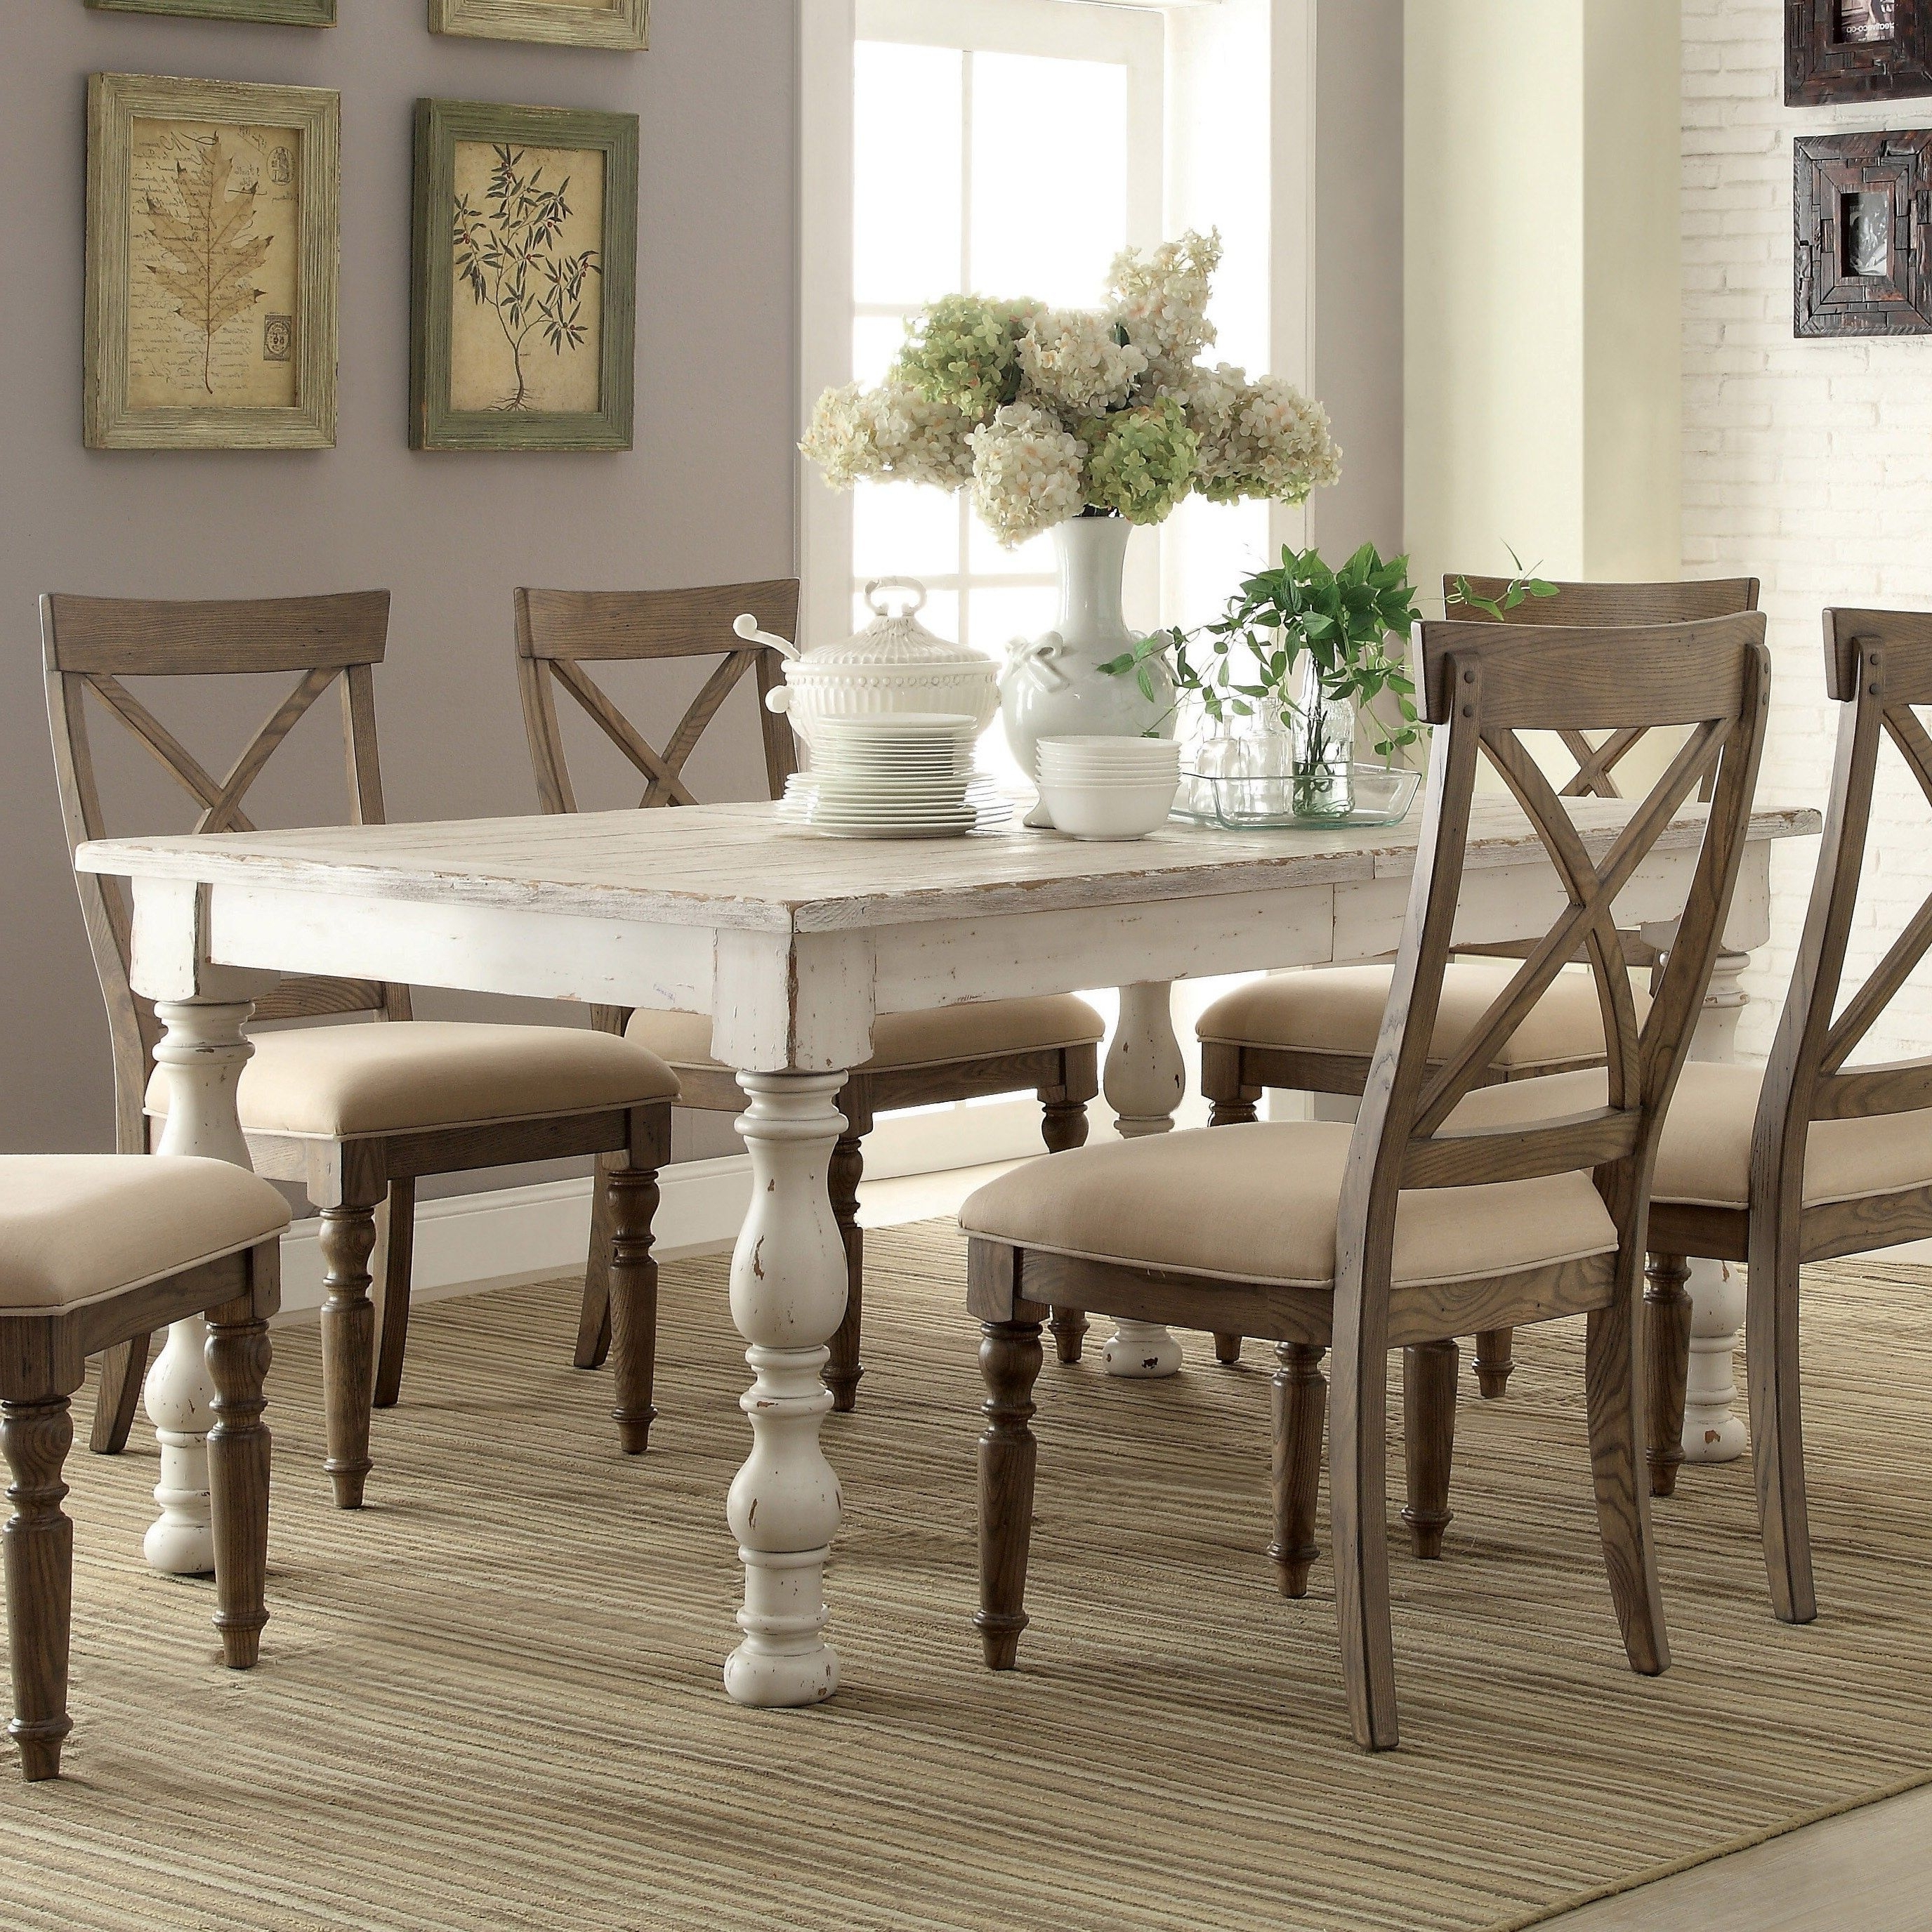 Aberdeen Wood Rectangular Dining Table Only In Weathered Worn White Throughout Most Recent Laurent 7 Piece Rectangle Dining Sets With Wood And Host Chairs (View 2 of 25)